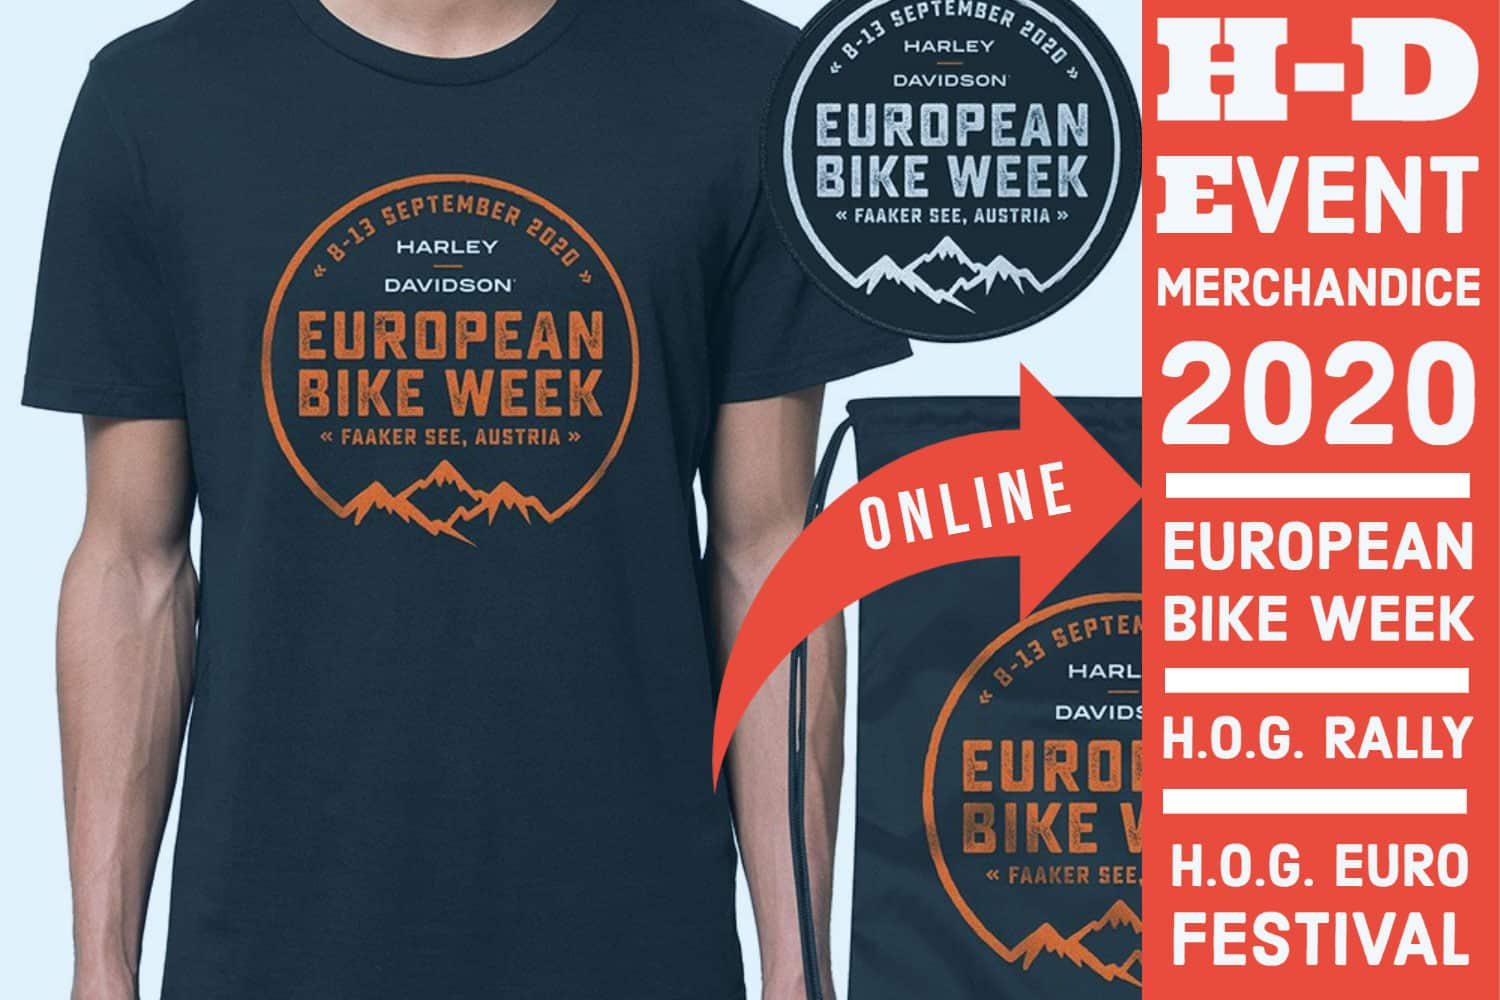 EUROPEAN BIKE WEEK 2020 MERCHANDISE VORBESTELLUNG